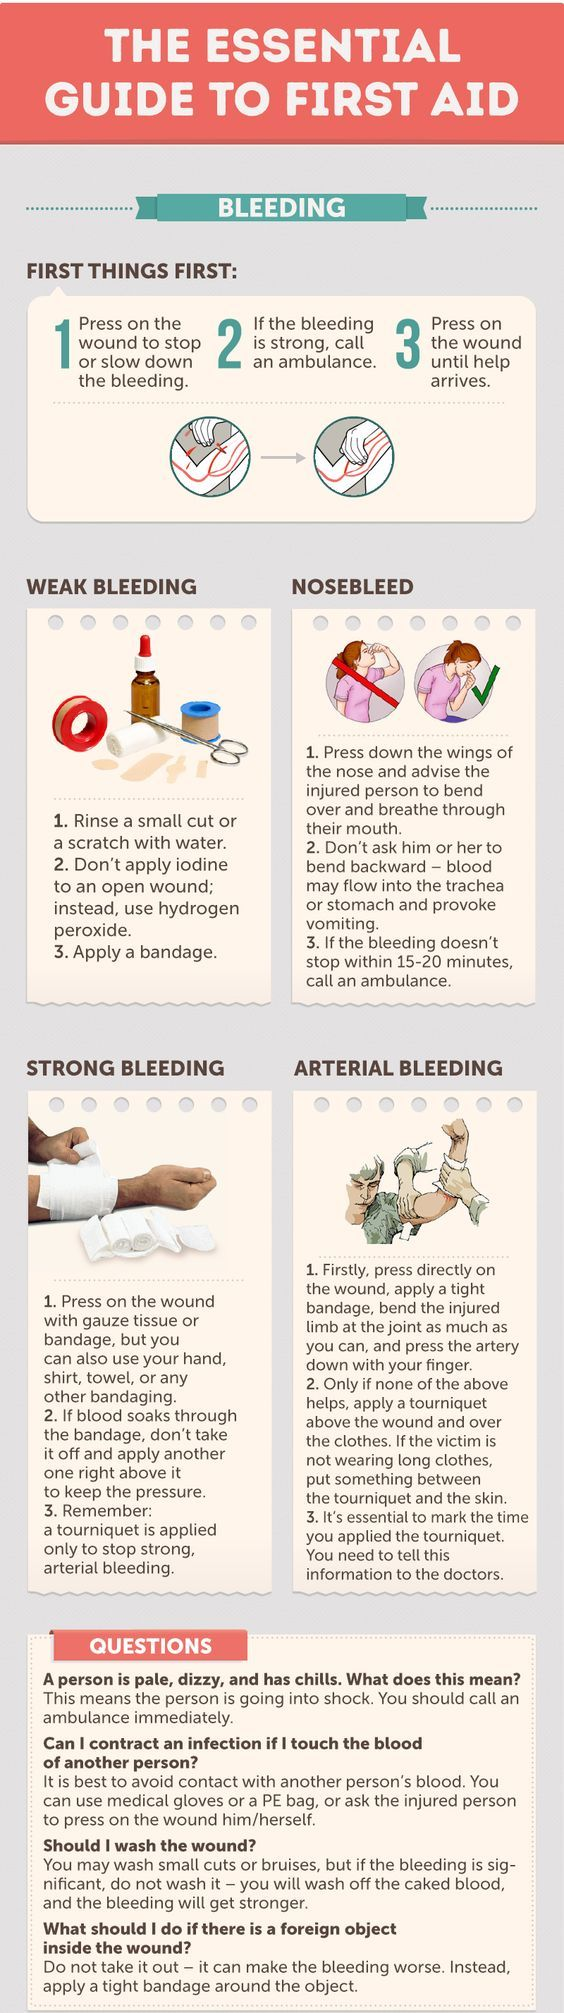 Control and Stop Bleeding - The Essential Guide. Save this guide to control bleeding at home, learn how to stop weak bleeding, nosebleed, strong bleeding and arterial bleeding. Stop severe hemorrhages with an israeli bandage: http://insidefirstaid.com/personal/first-aid-kit/what-is-and-how-to-use-israeli-bandage #bleeding #hemorrhage #emergencies